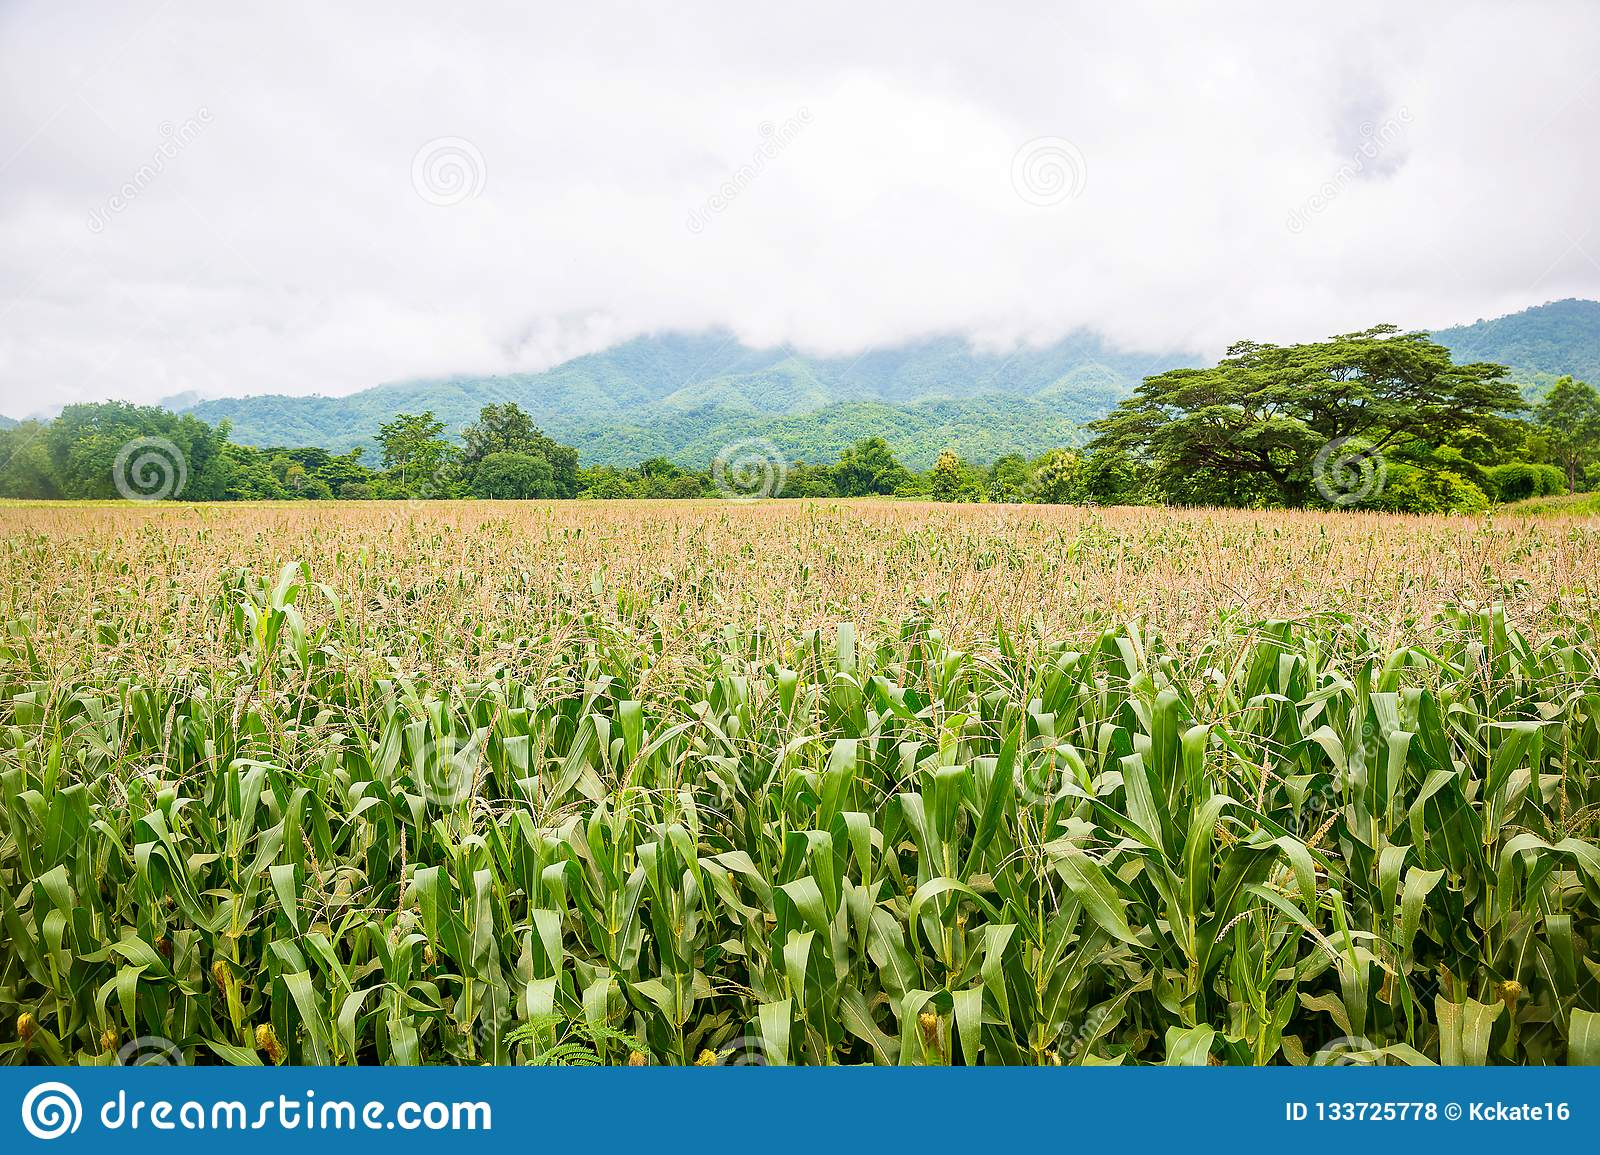 Corn field with mountain on background. Corn farm agriculture with corn tree on field.